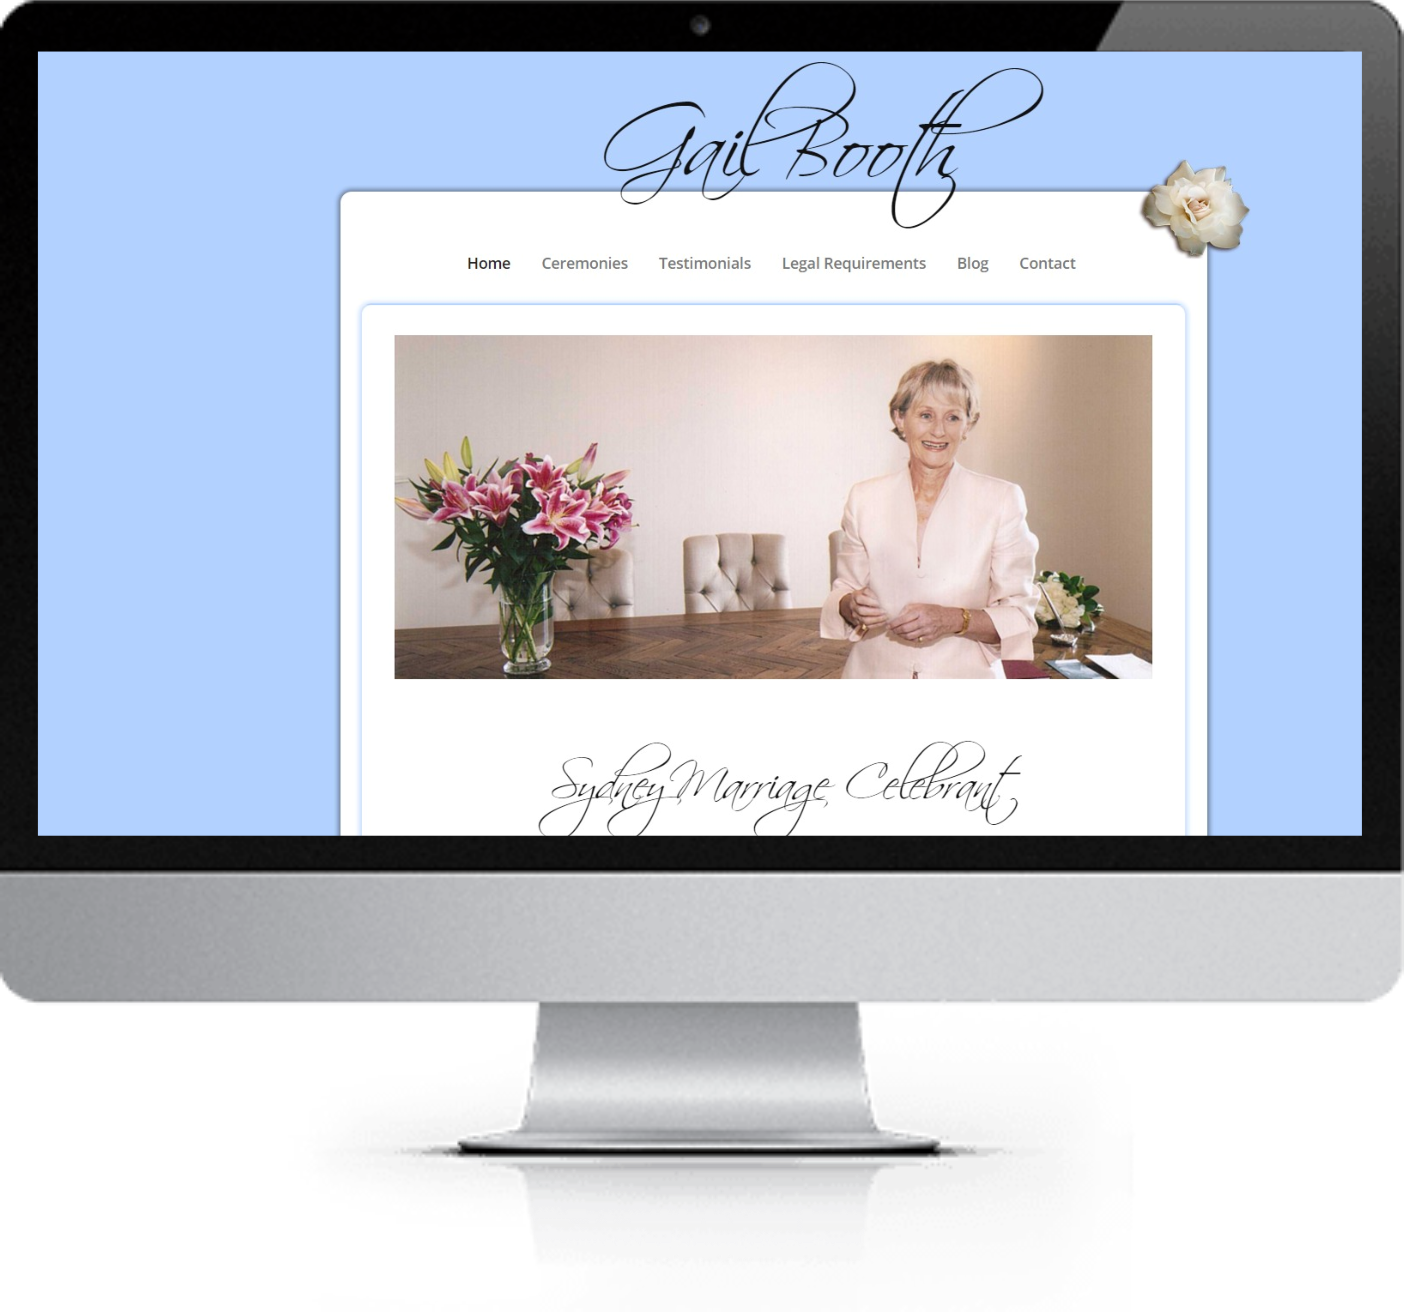 Website Redesign - The Sydney Celebrant - Before